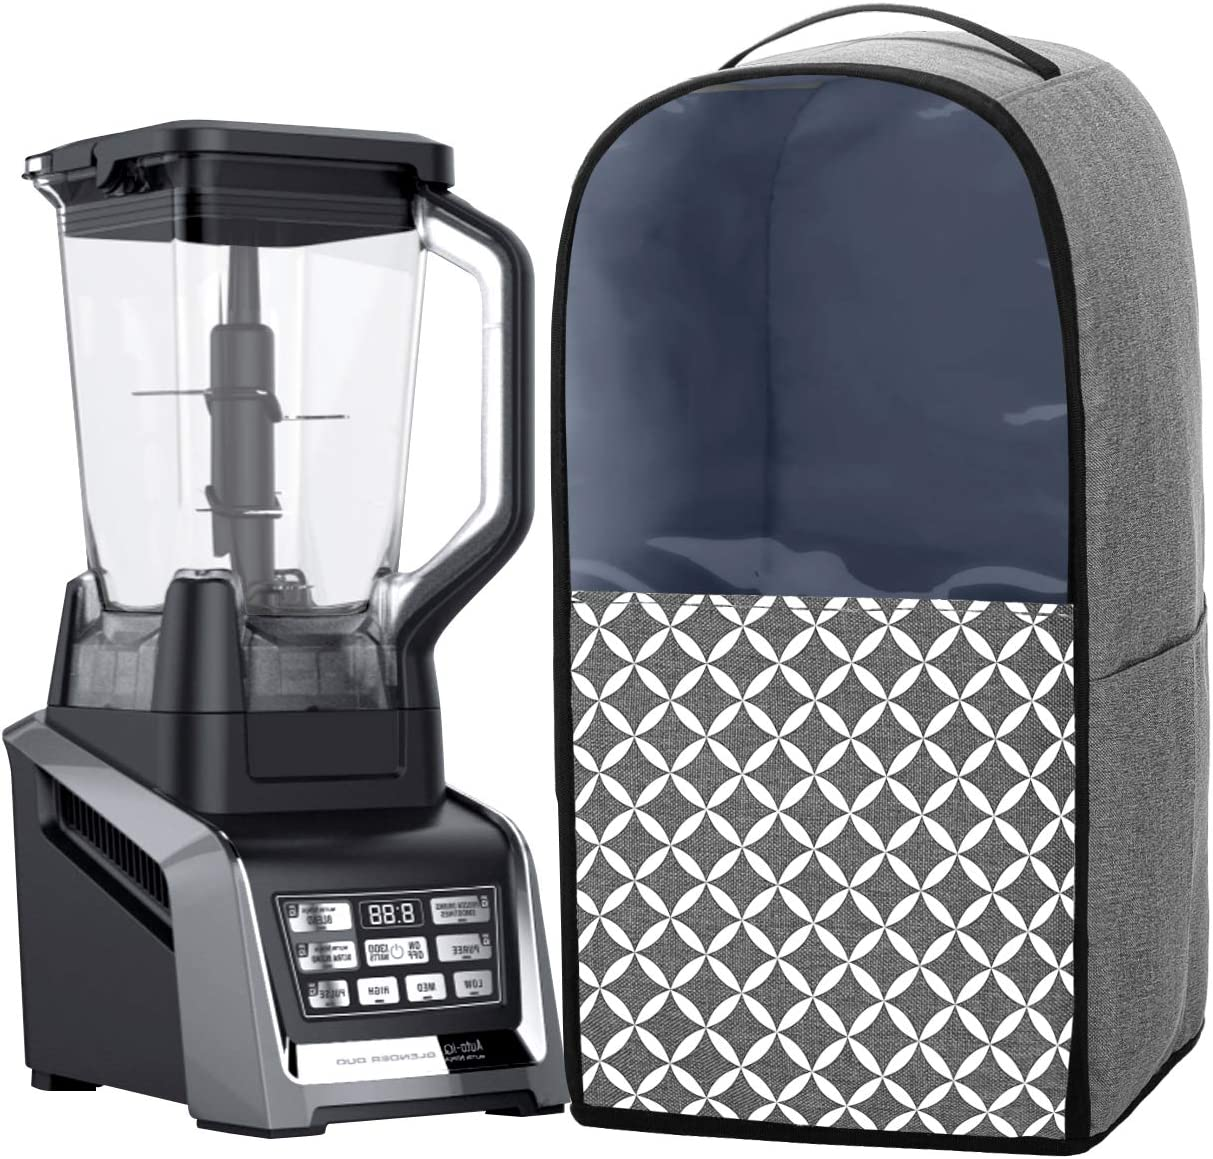 Yarwo Visible Blender Dust Cover Compatible with Ninja Foodi Blender, Small Appliance Cover with Pockets and Top Handle, Gray with Grid (Cover Only, Patent Pending)